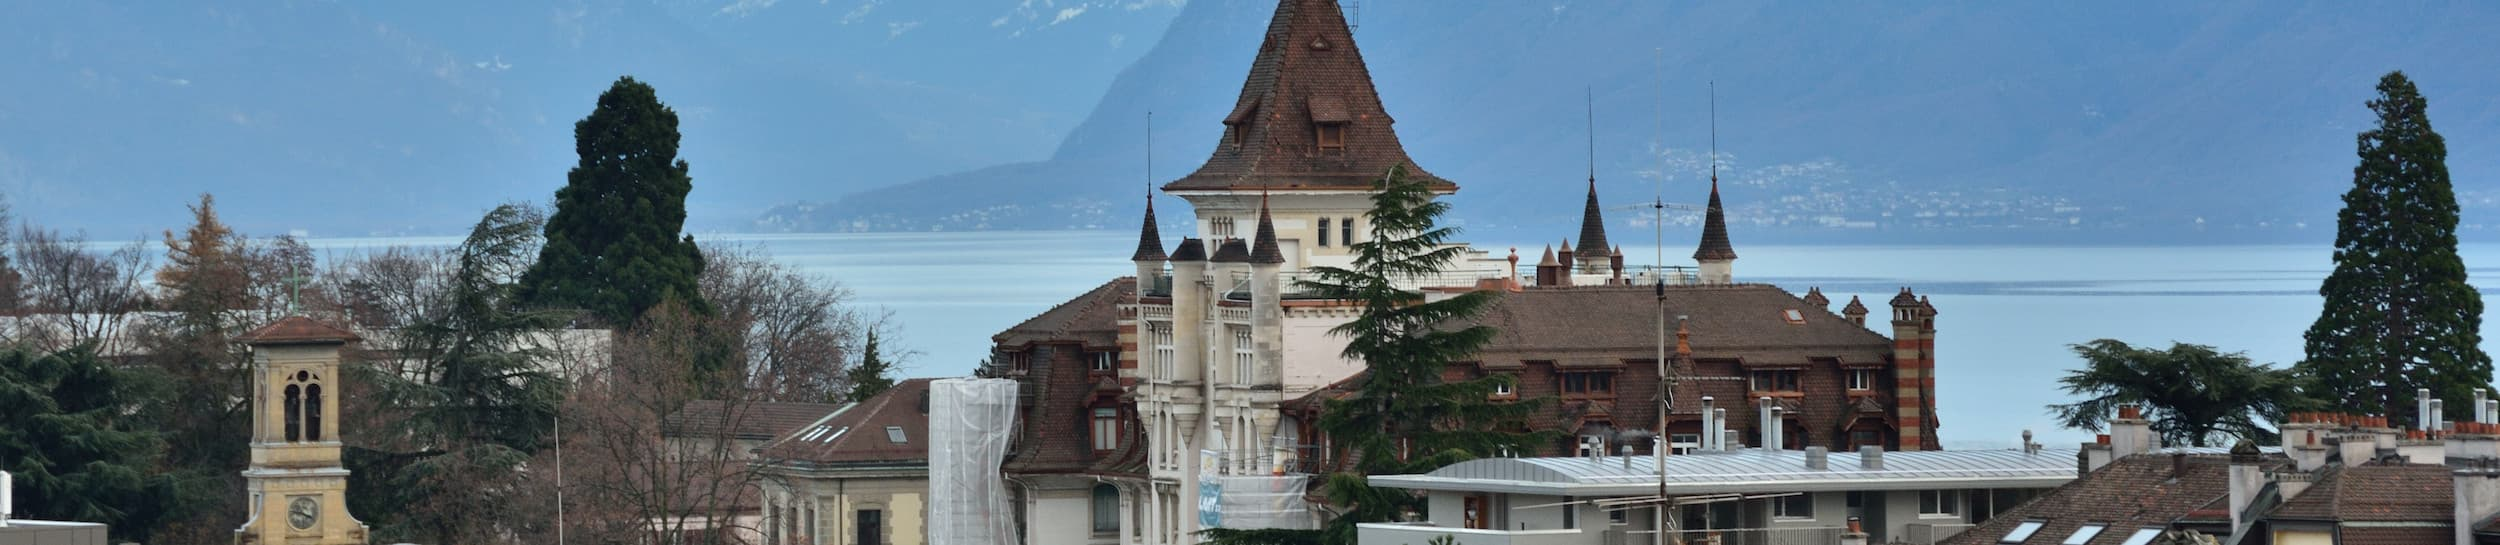 Jobs And Salaries In Lausanne Switzerland